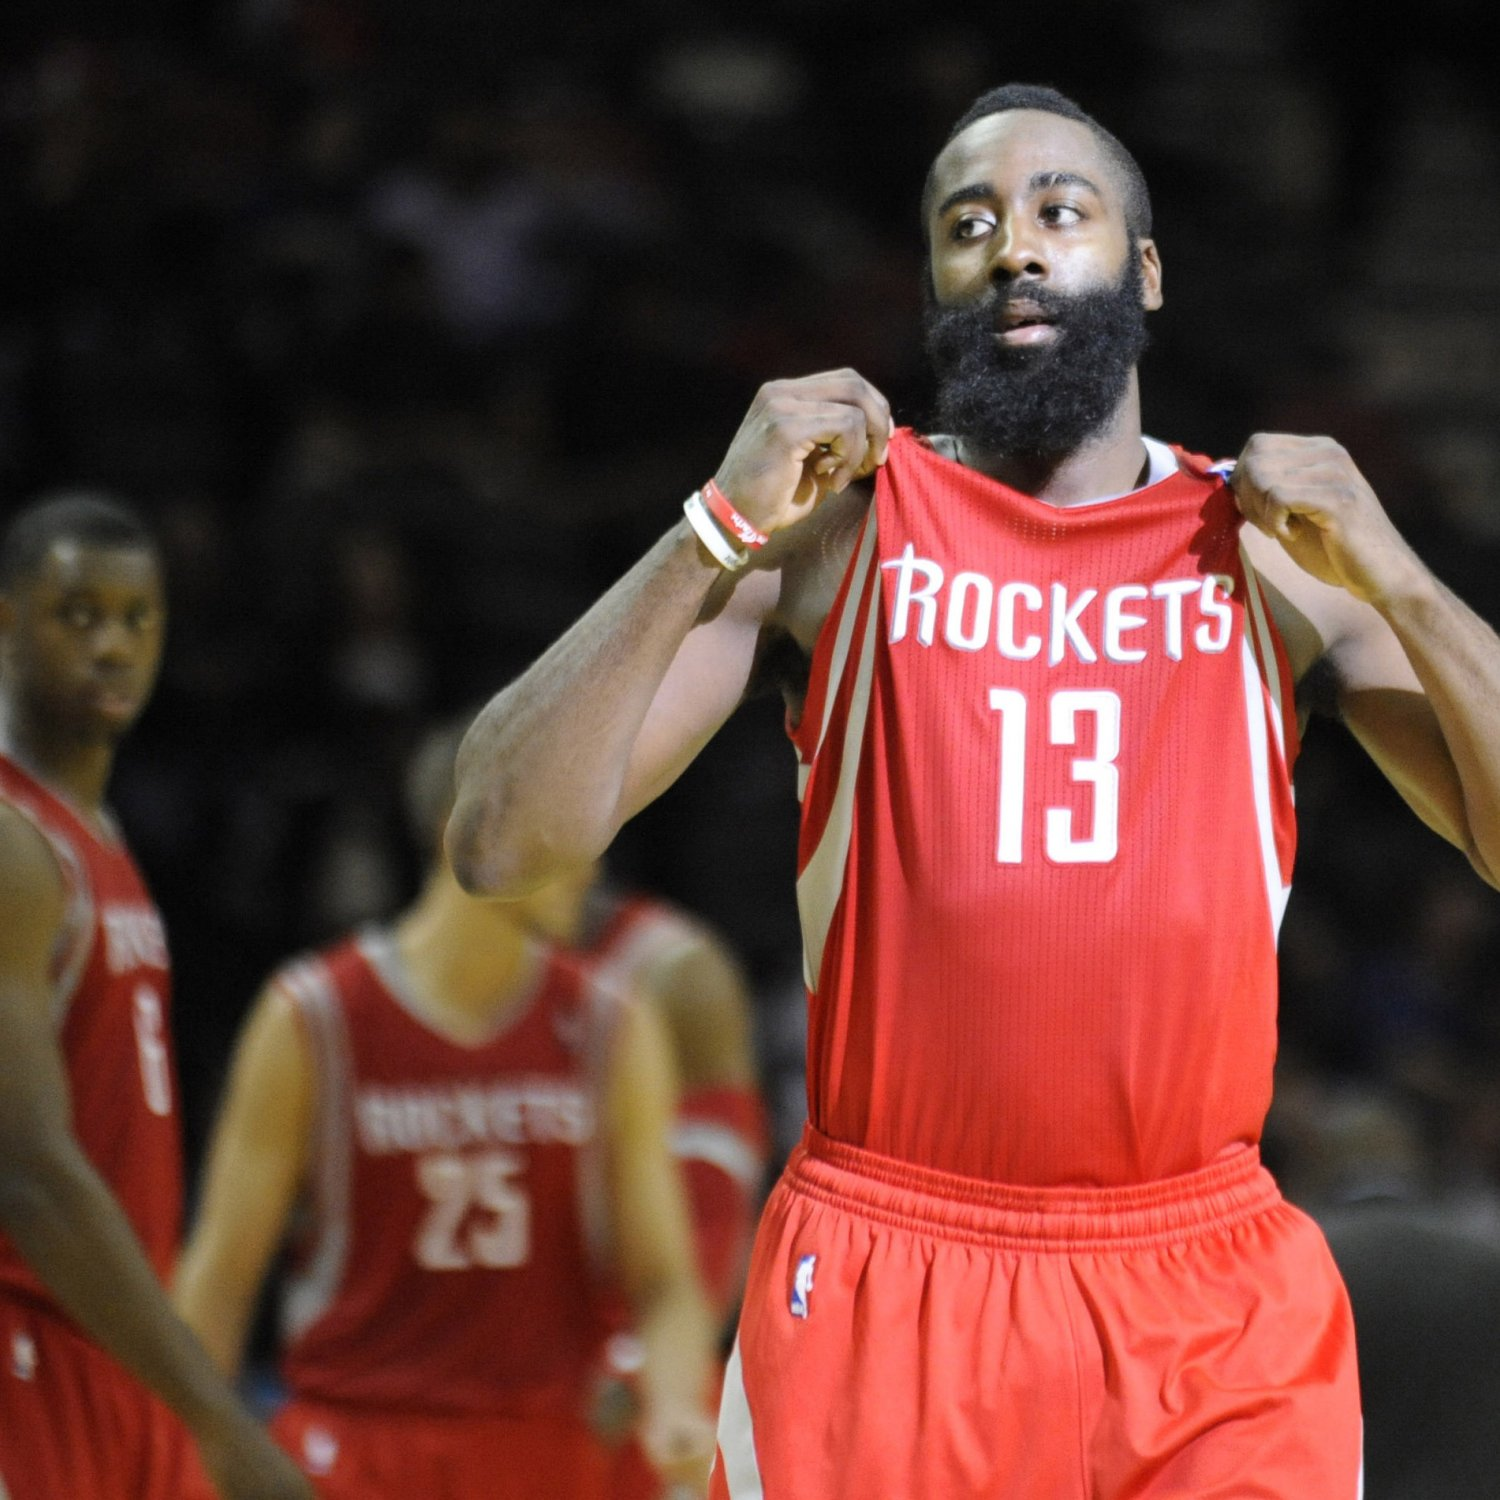 Rockets All Time Roster: Houston Rockets Power Rankings: Rating Every Player After